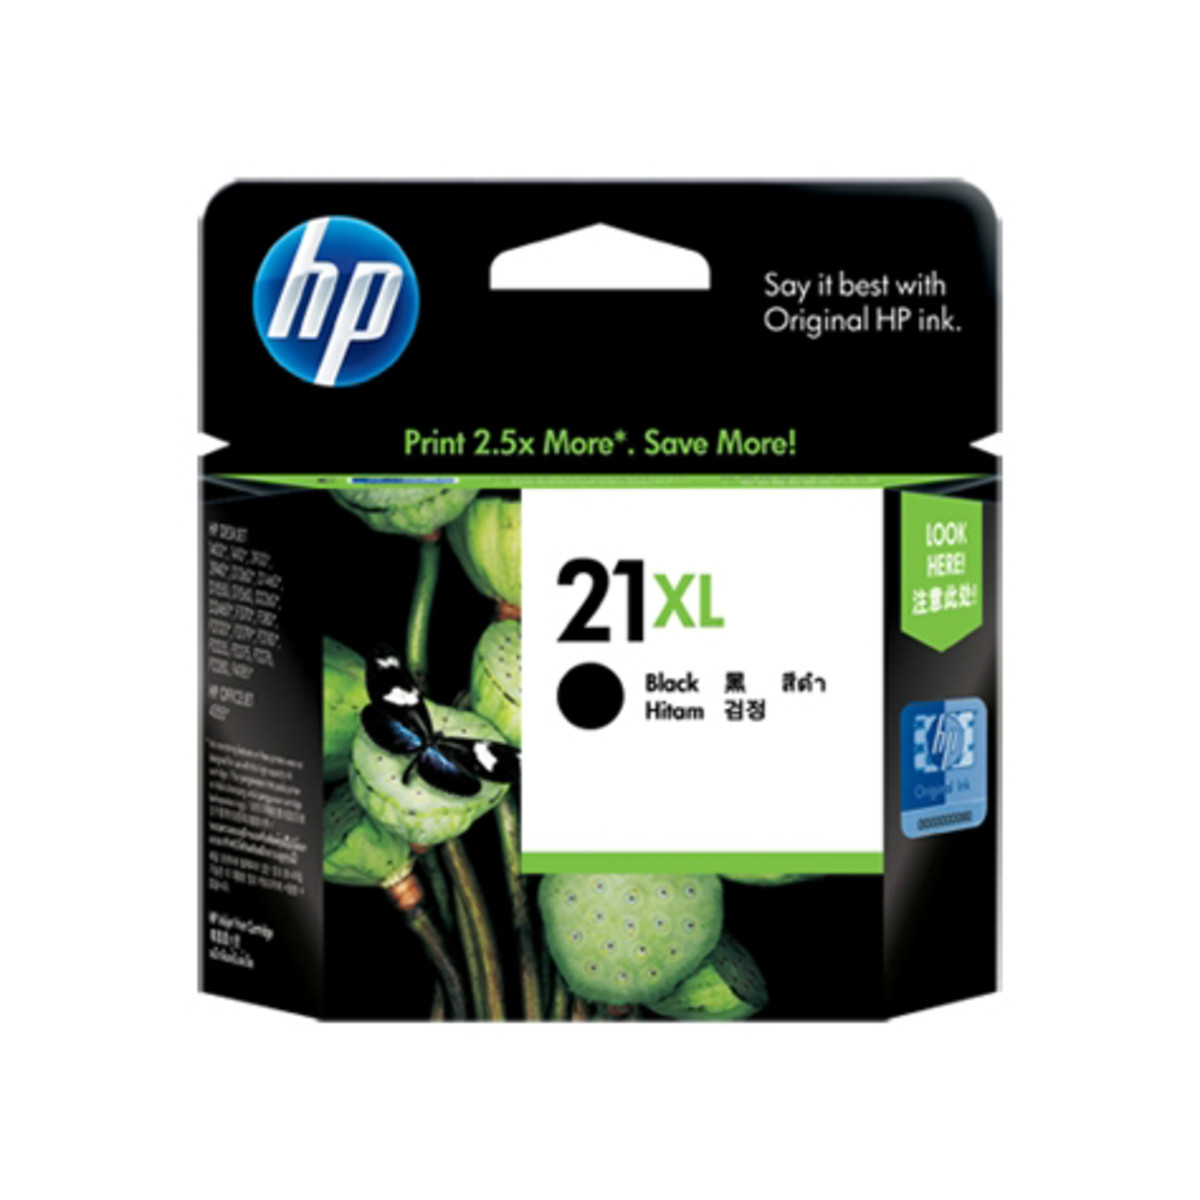 HP 21XL (C9351CA) Black Ink Cartridge - High Yield